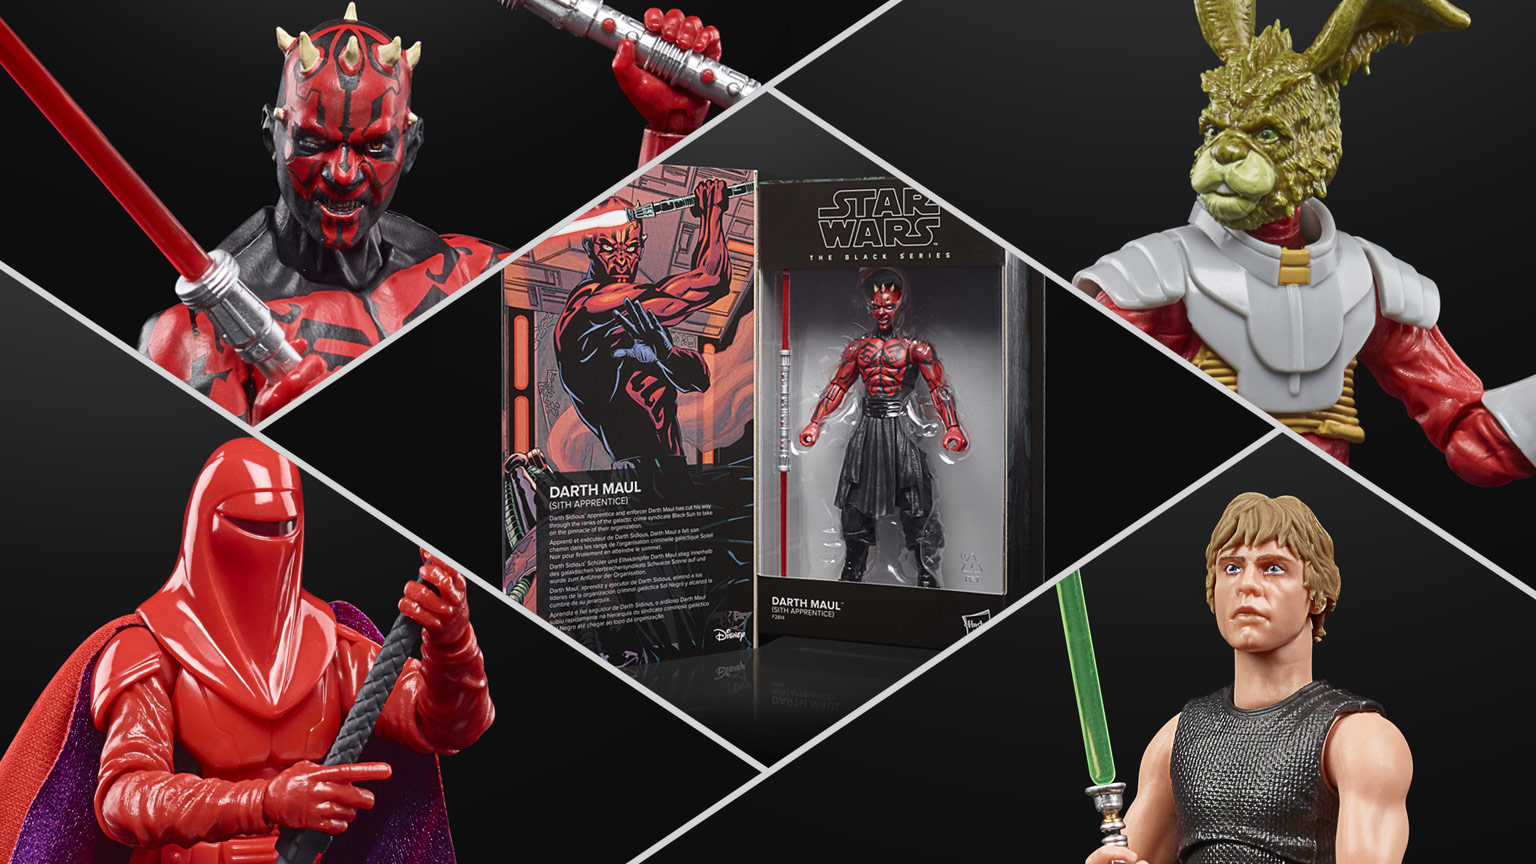 Star Wars The Black Series figures inspired by Star Wars books and comics